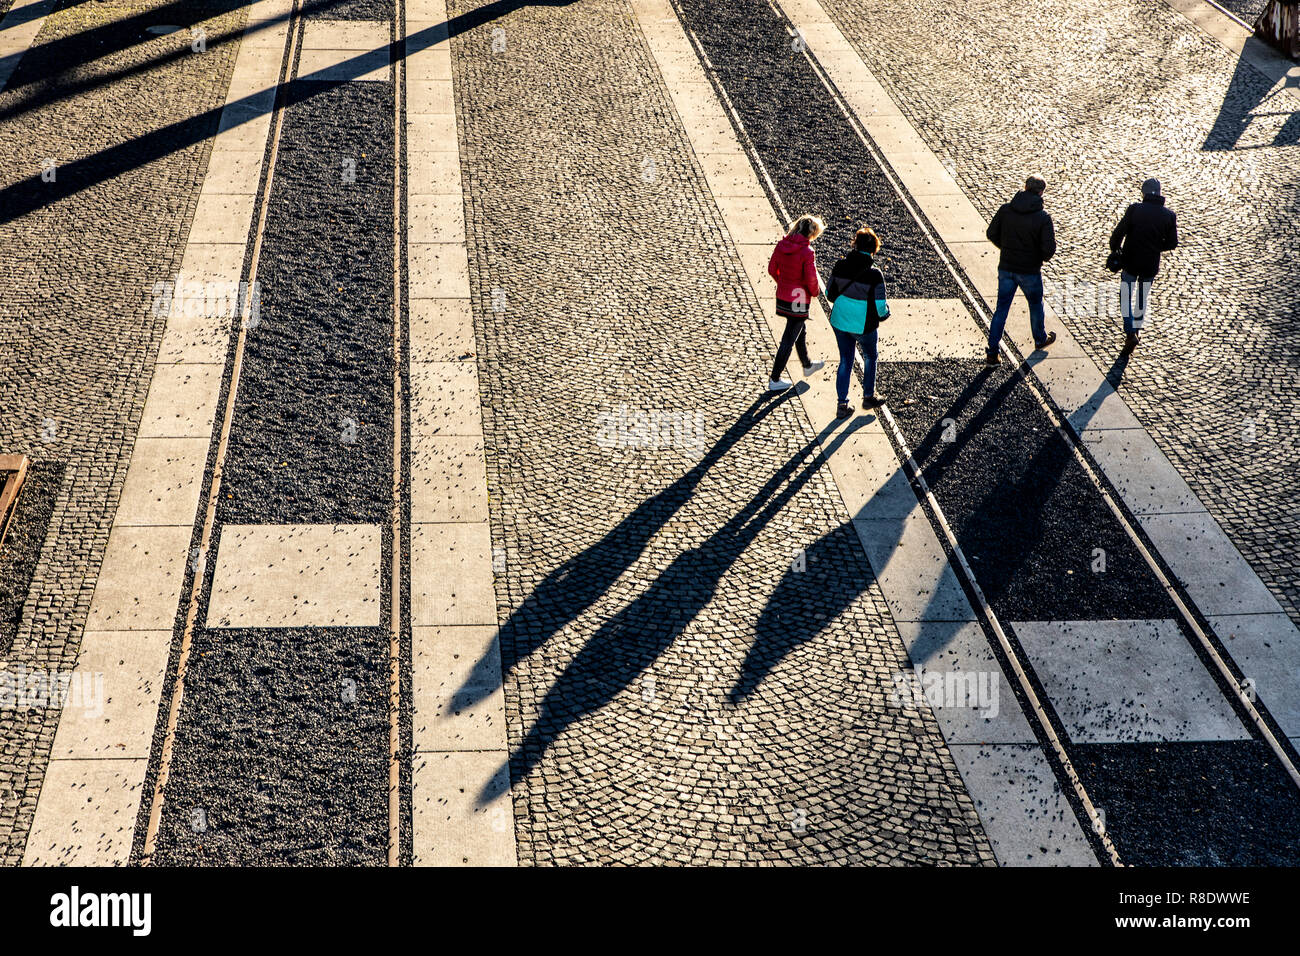 The new track boulevard, former track systems, at the Zeche Zollverein in Essen, Germany - Stock Image